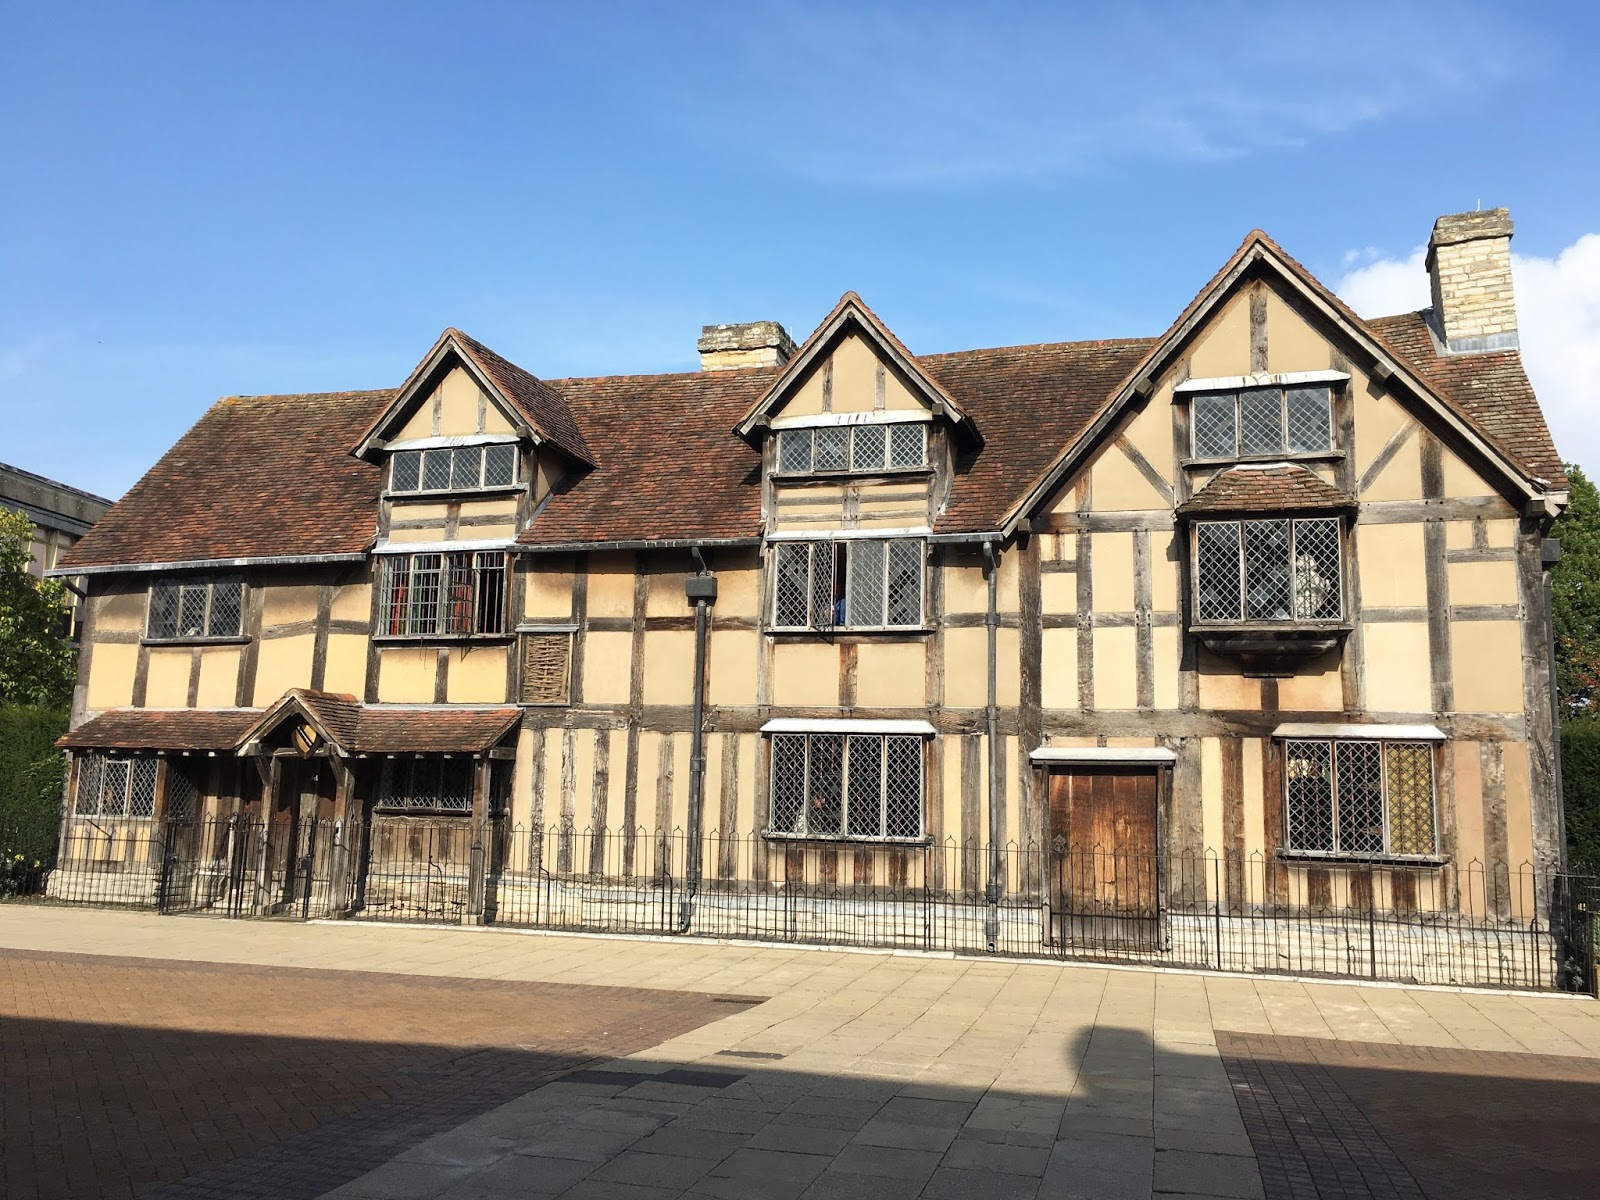 Birthplace of William Shakespeare \ Stratford Upon Avon \ Travel \ Priceless Life of Mine \ Over 40 lifestyle blog